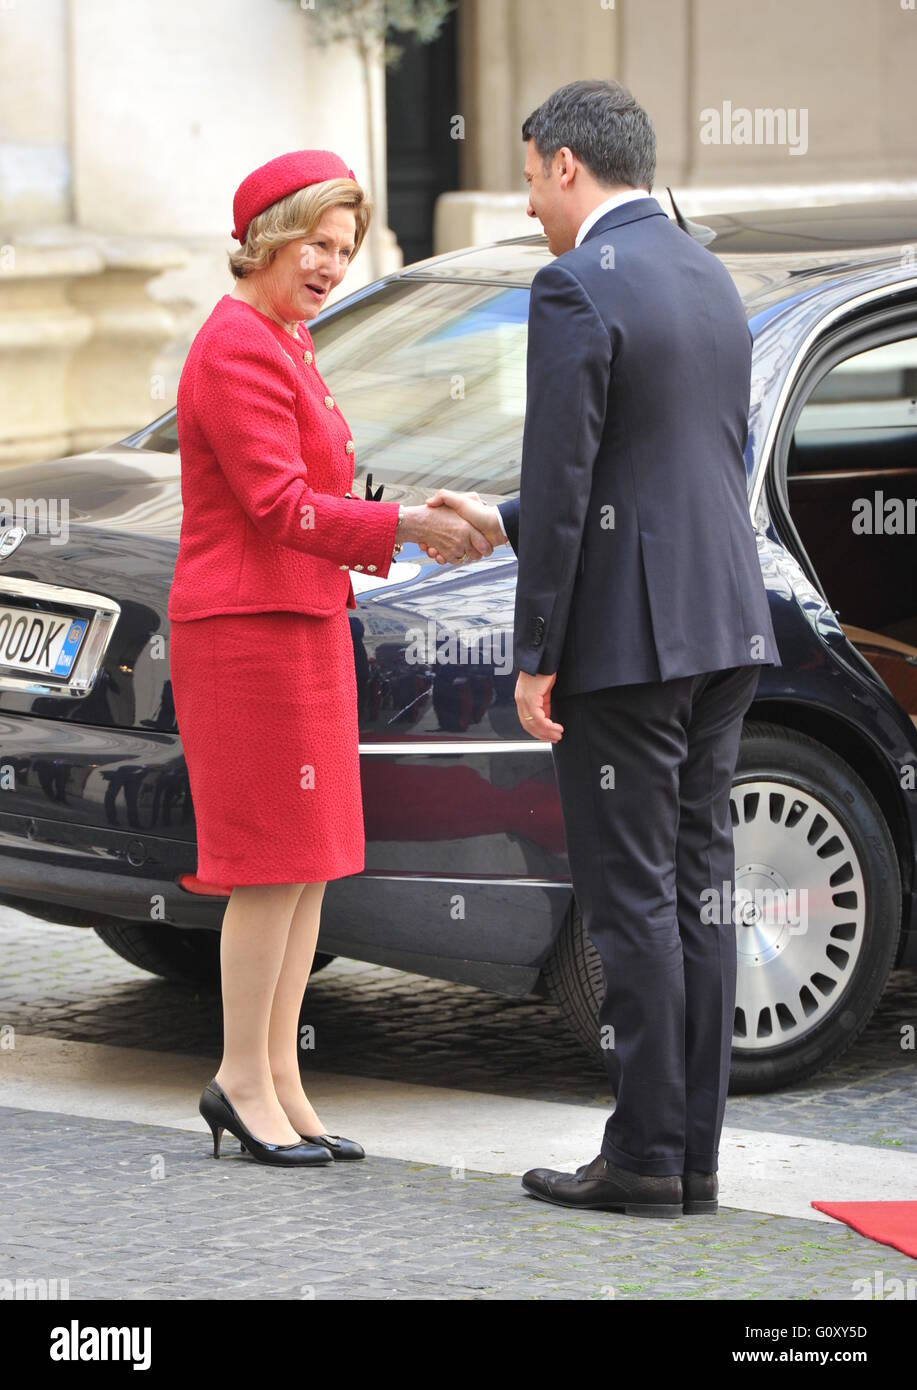 King harald v and queen sonja of norway greet italian prime minister king harald v and queen sonja of norway greet italian prime minister matteo renzi as they arrive at palazzo chigi during a three state visit m4hsunfo